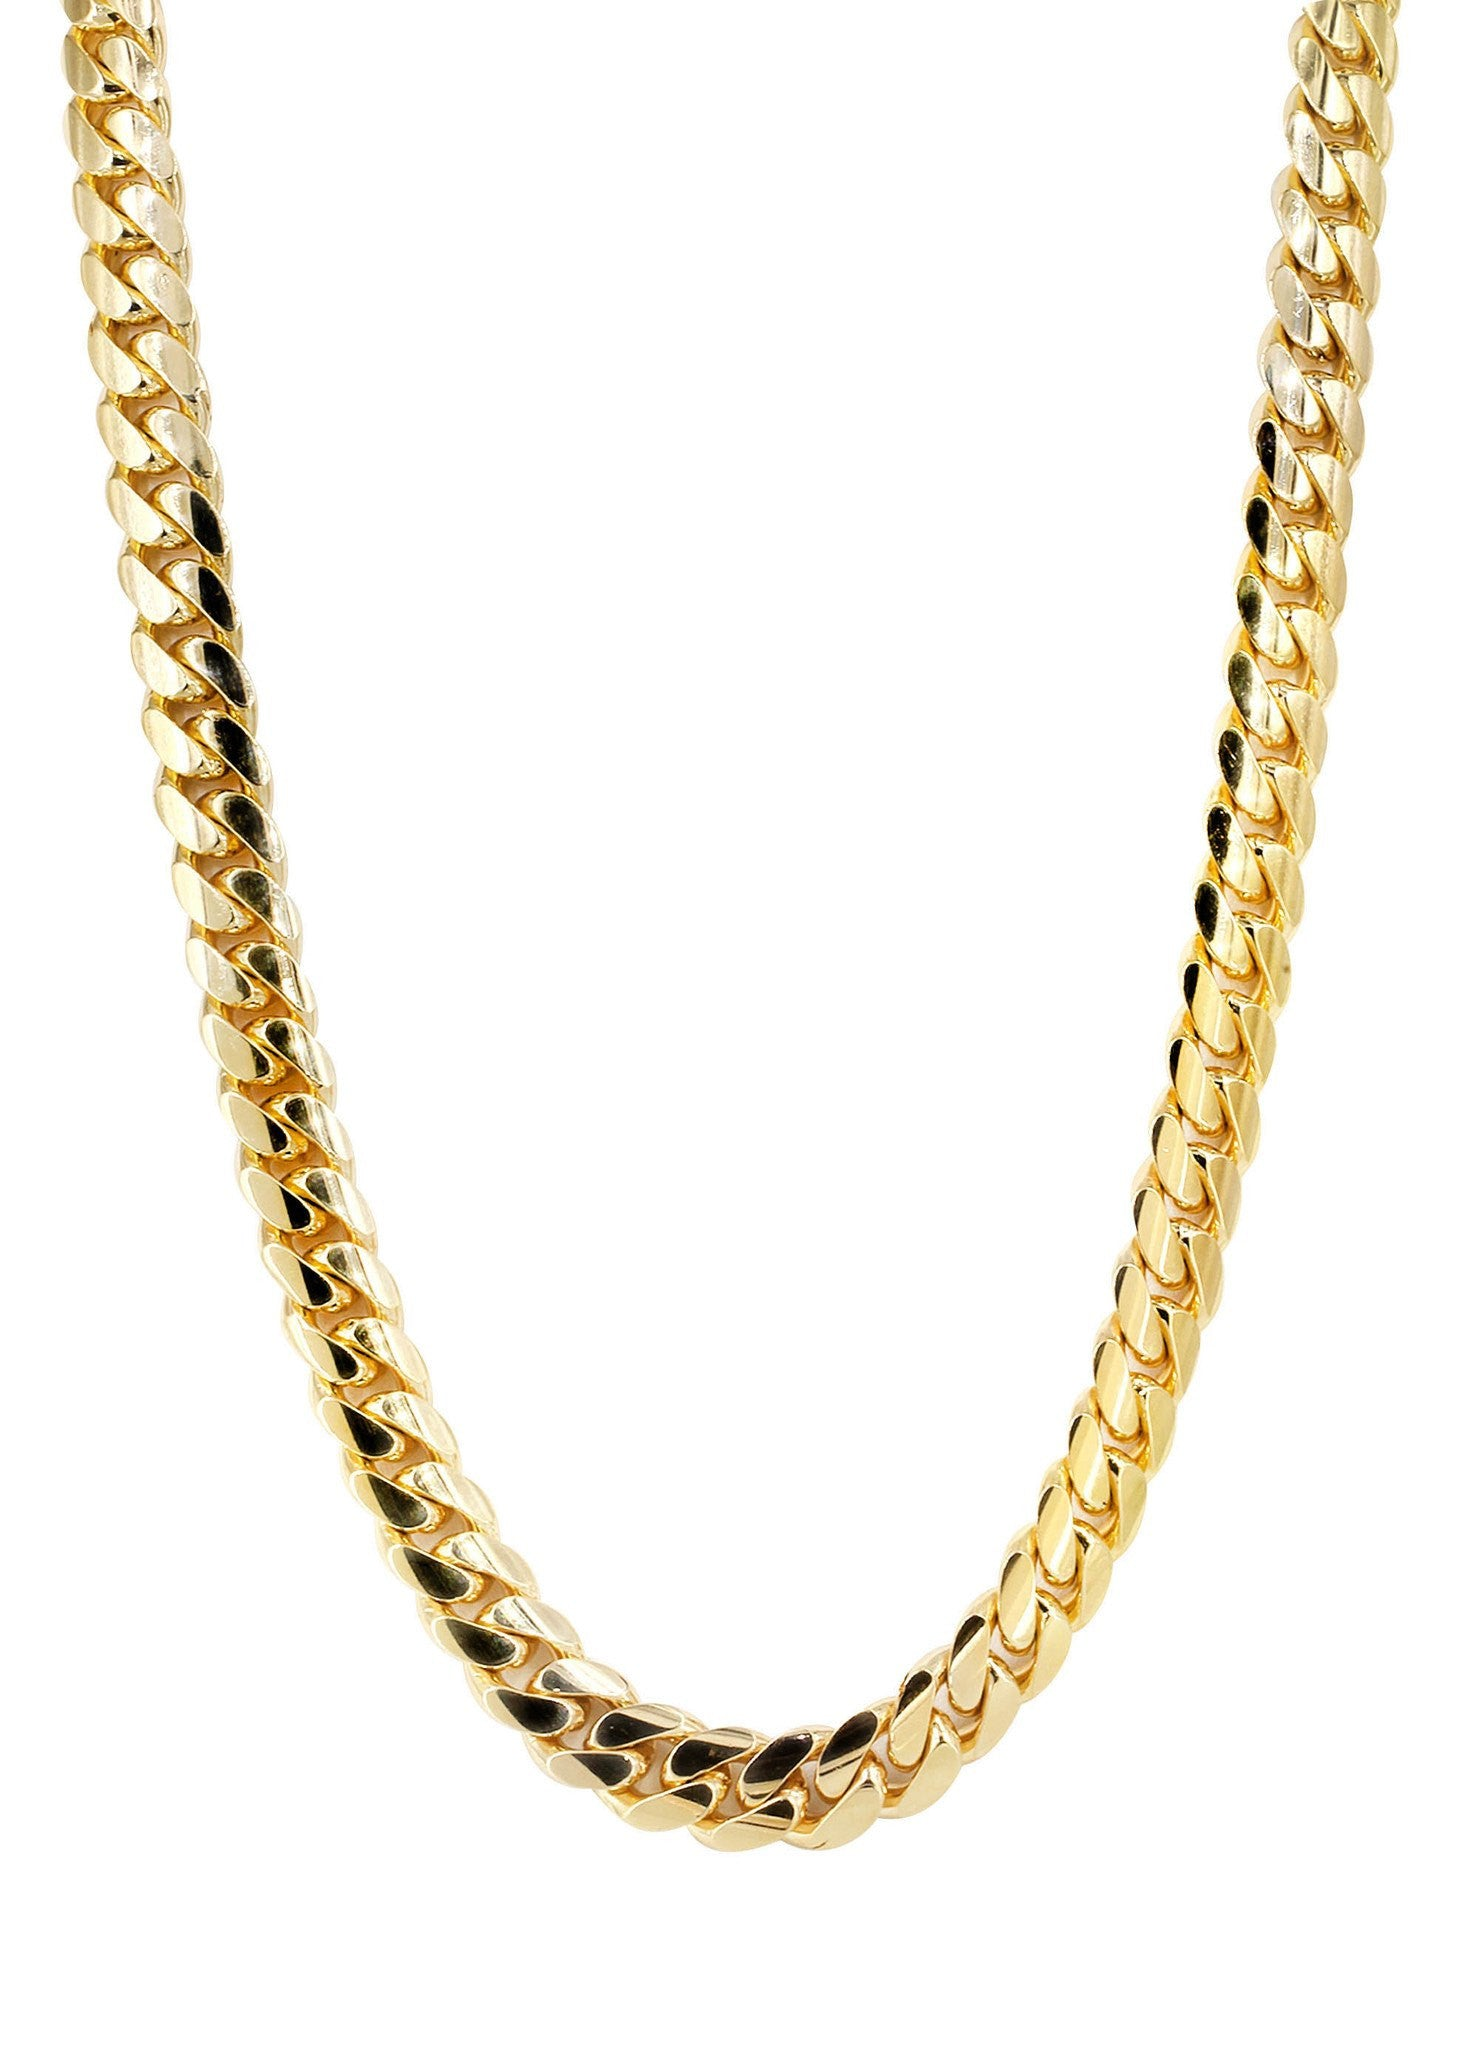 10k Gold Cuban Link Chain >> Solid Mens Miami Cuban Link Chain 10K Yellow Gold – FrostNYC